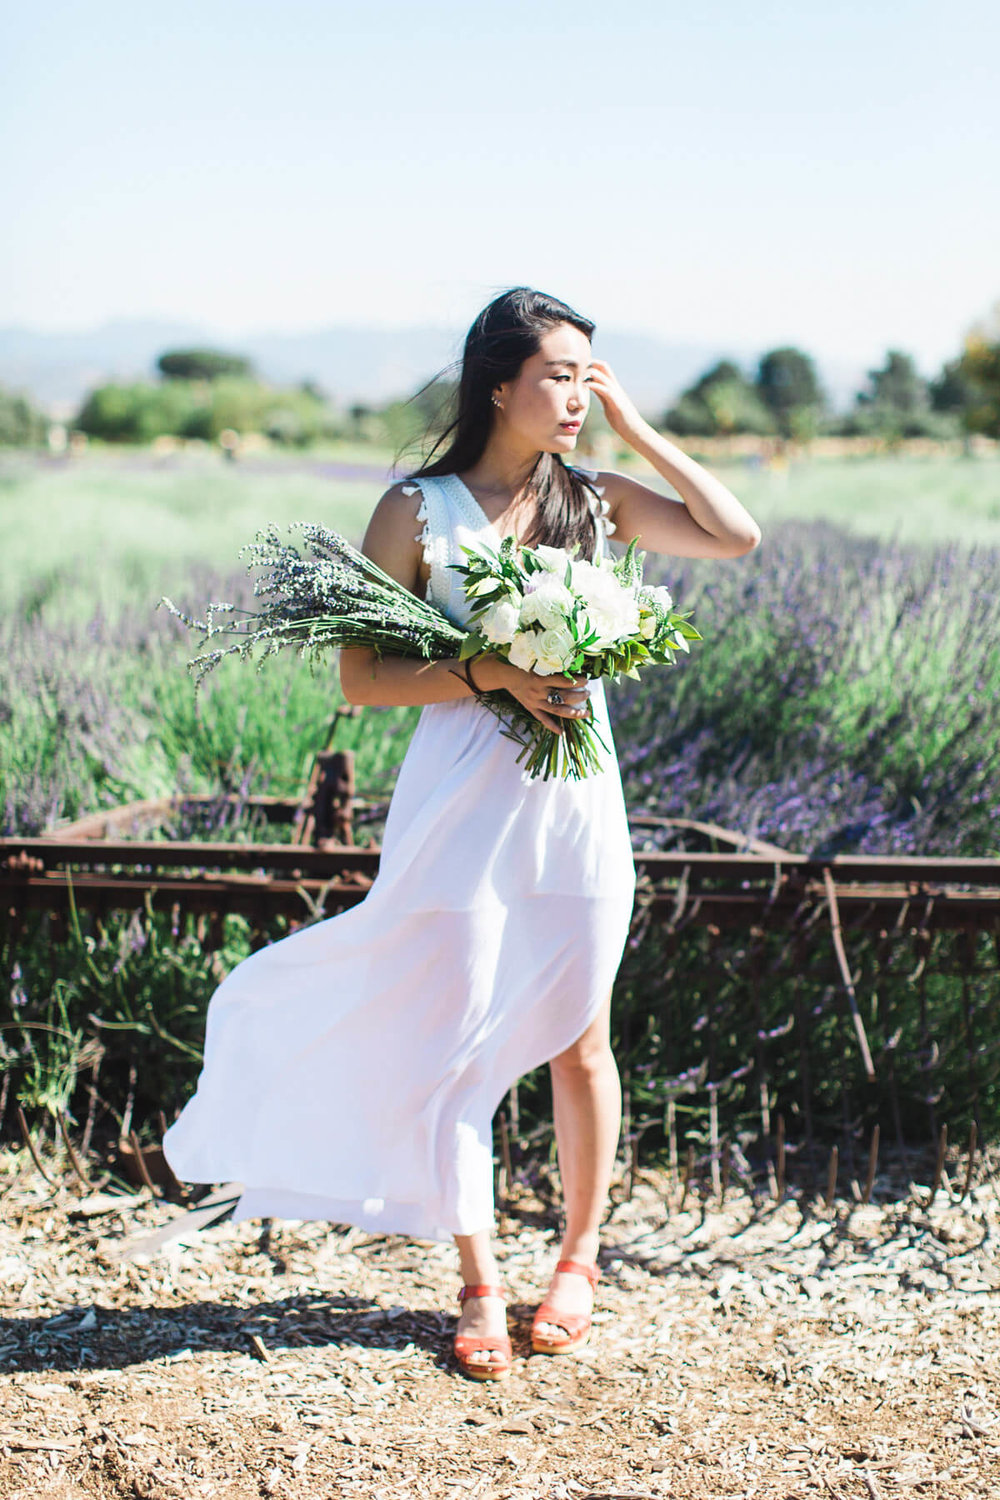 patty-violettes-the-light-and-glass-wedding-photography-01.jpg